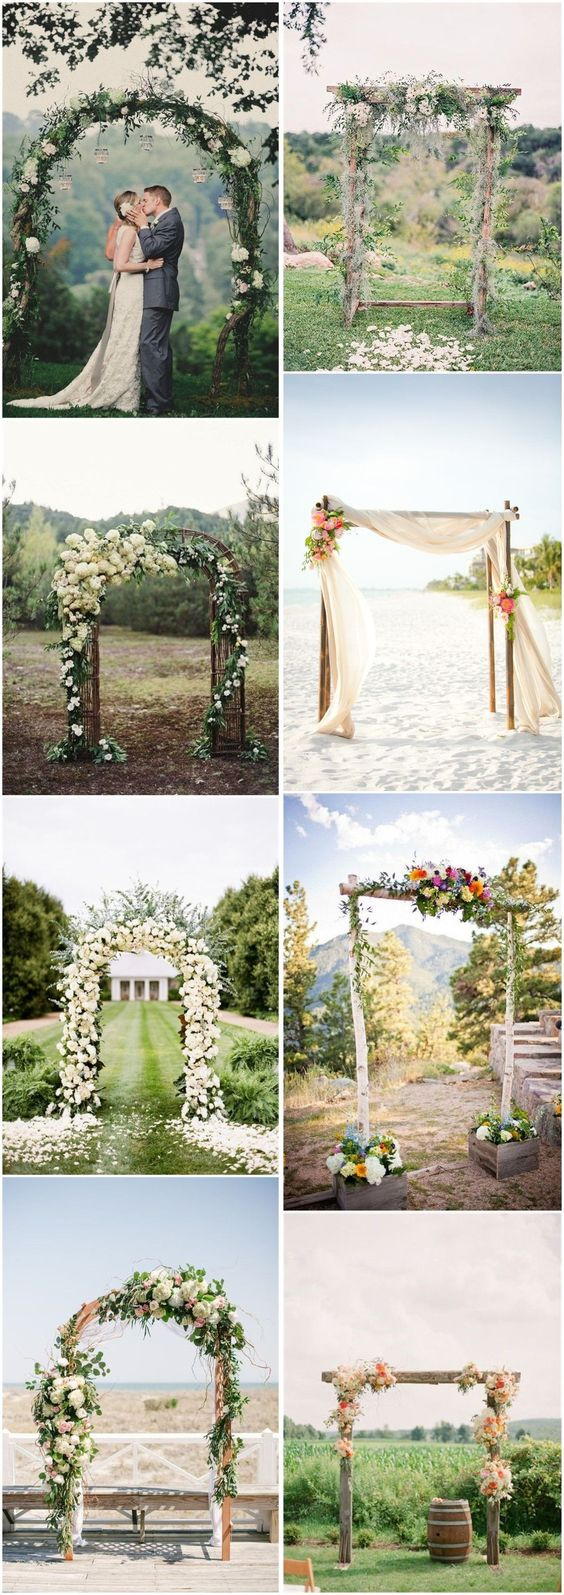 DIY Floral Wedding Arch Decoration Ideas